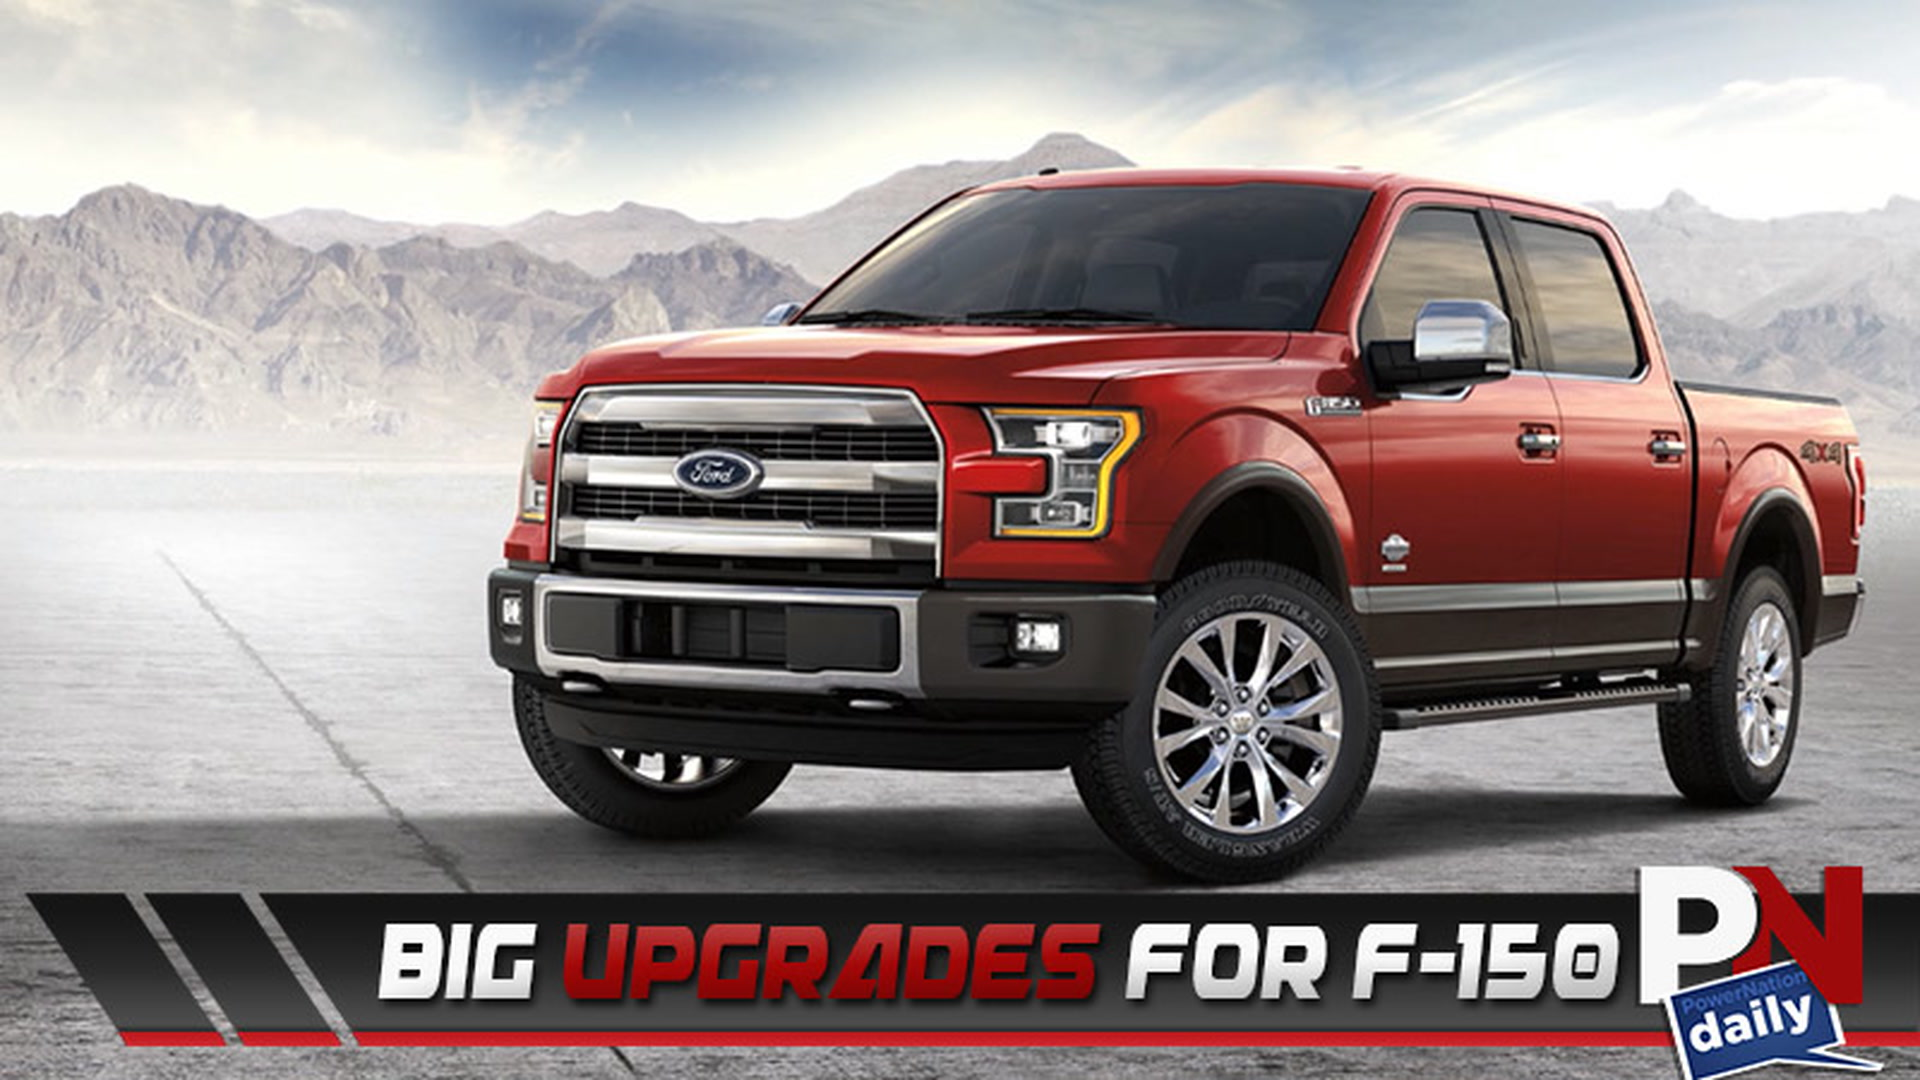 The 2017 Ford F 150 Gets BIG Upgrades